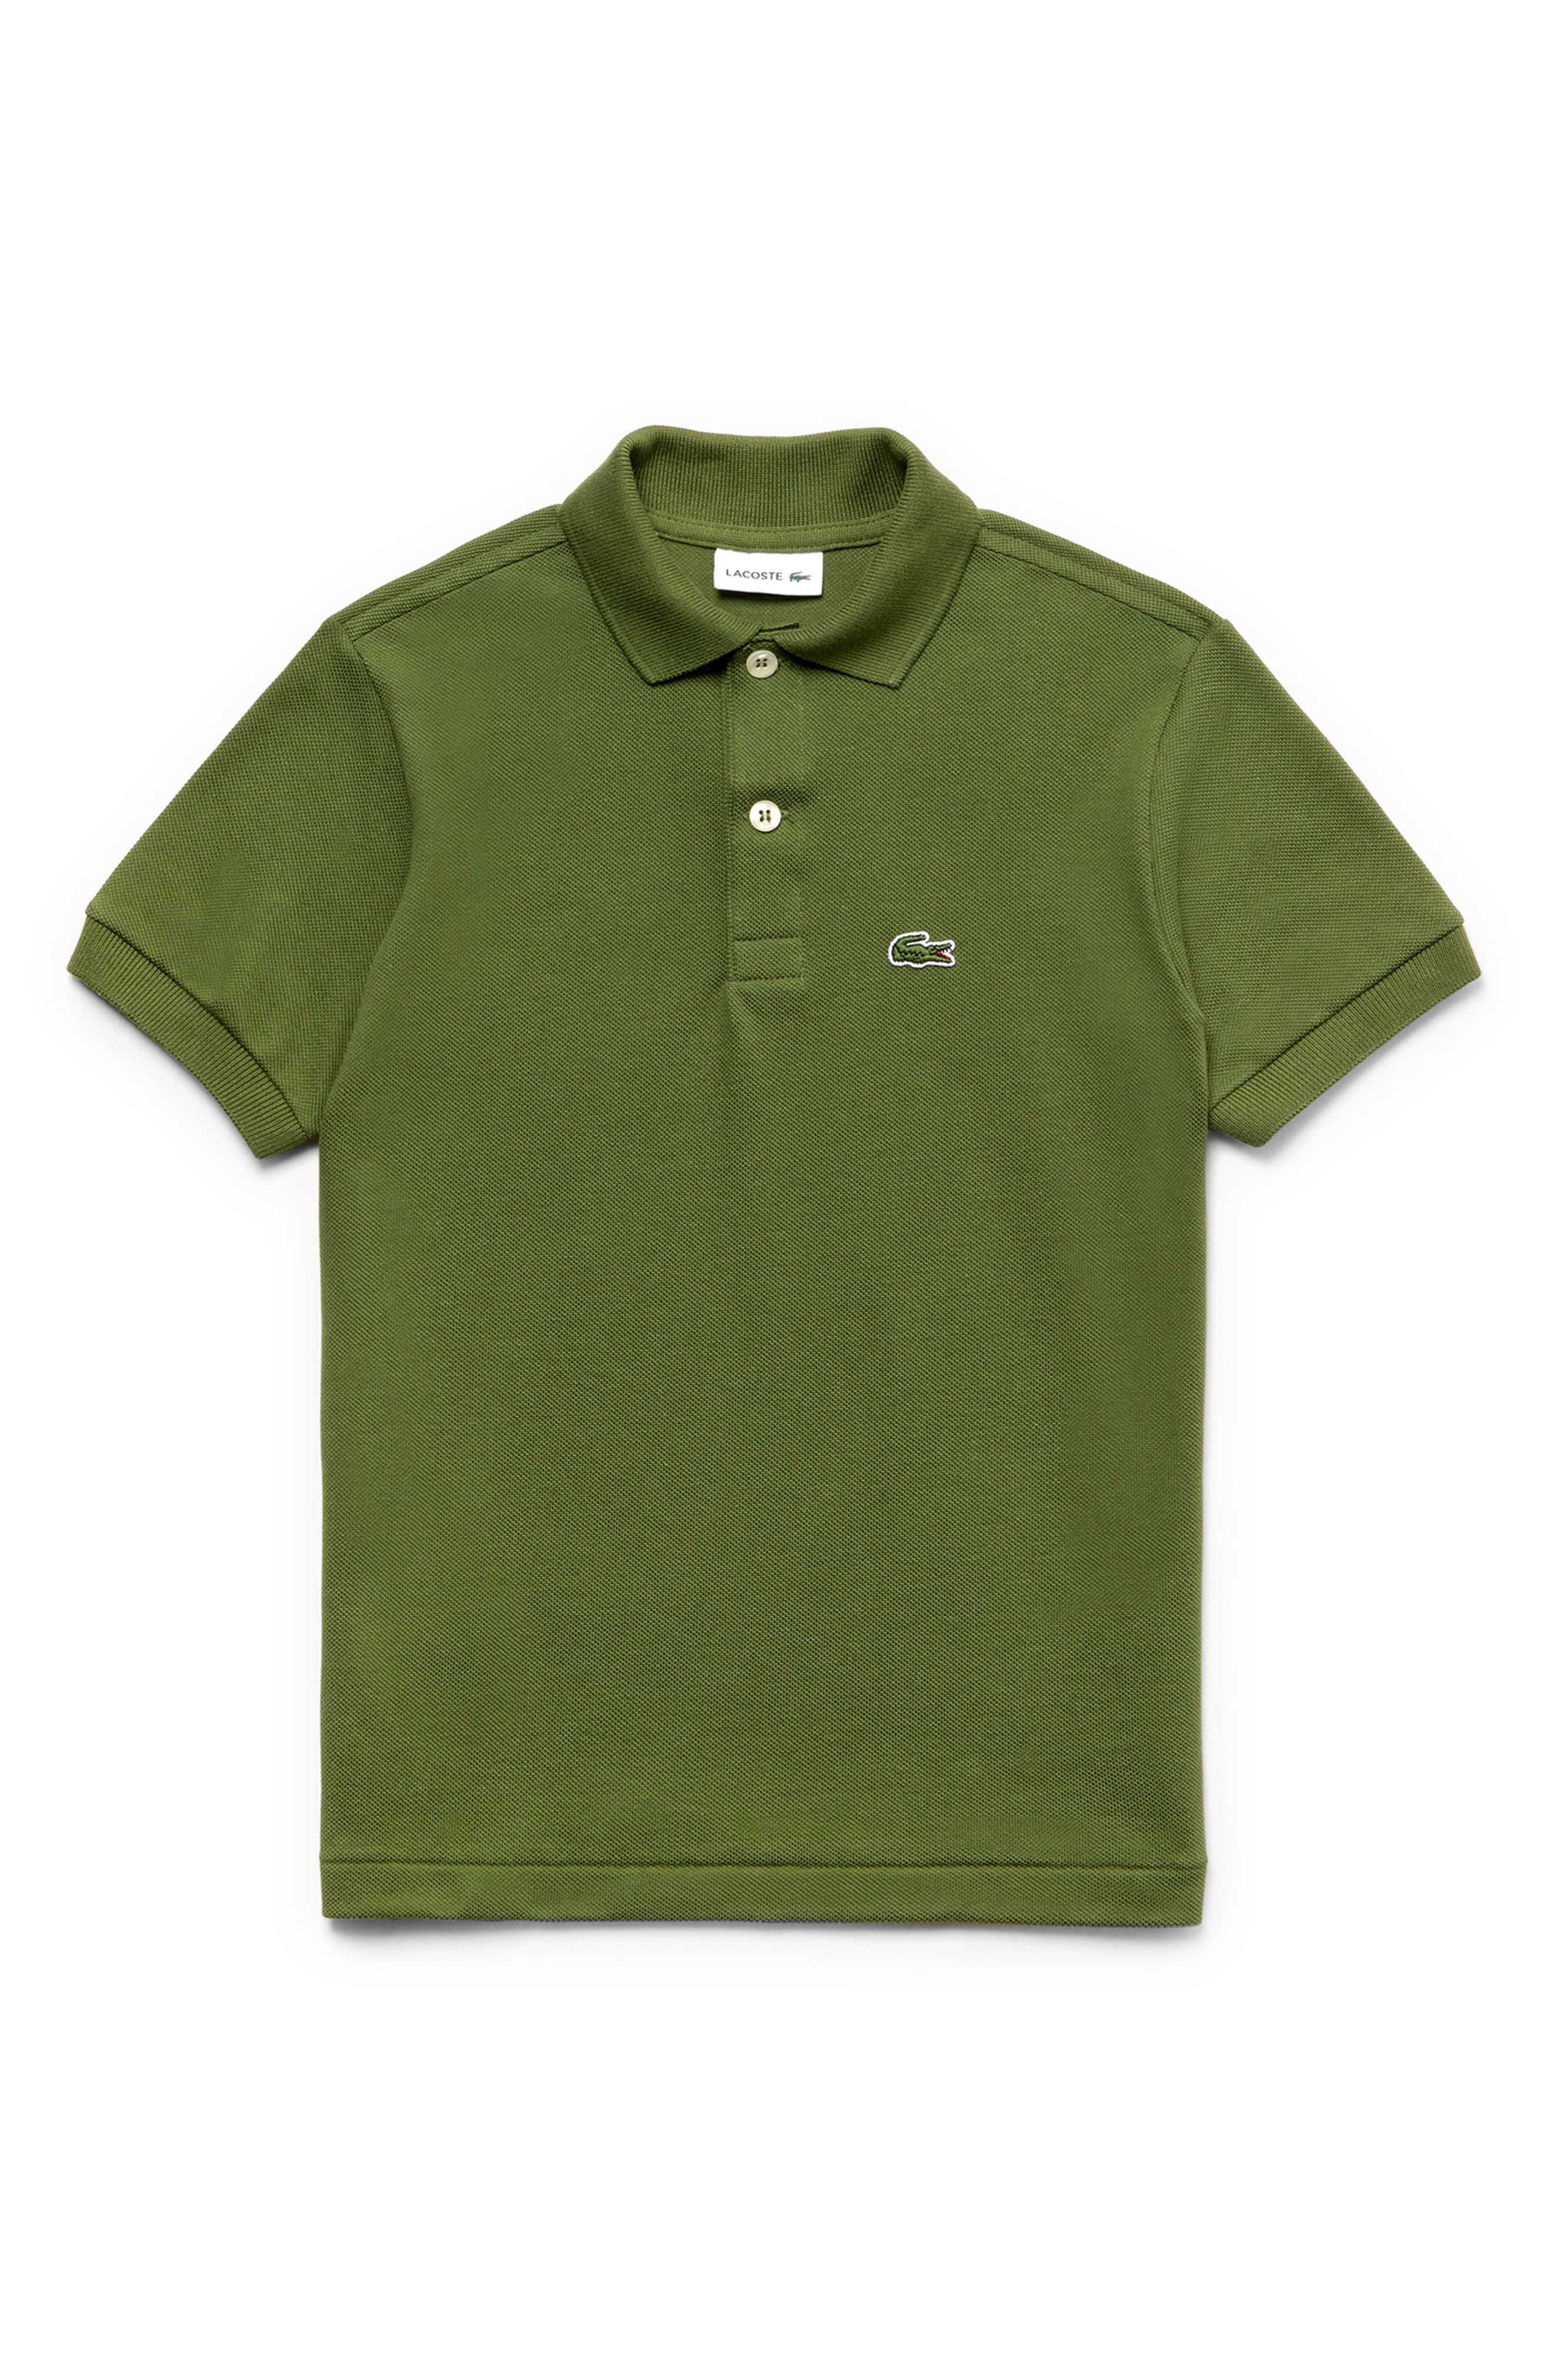 05d17fd9ae8 Kids' Lacoste Apparel: T-Shirts, Jeans, Pants & Hoodies | Nordstrom